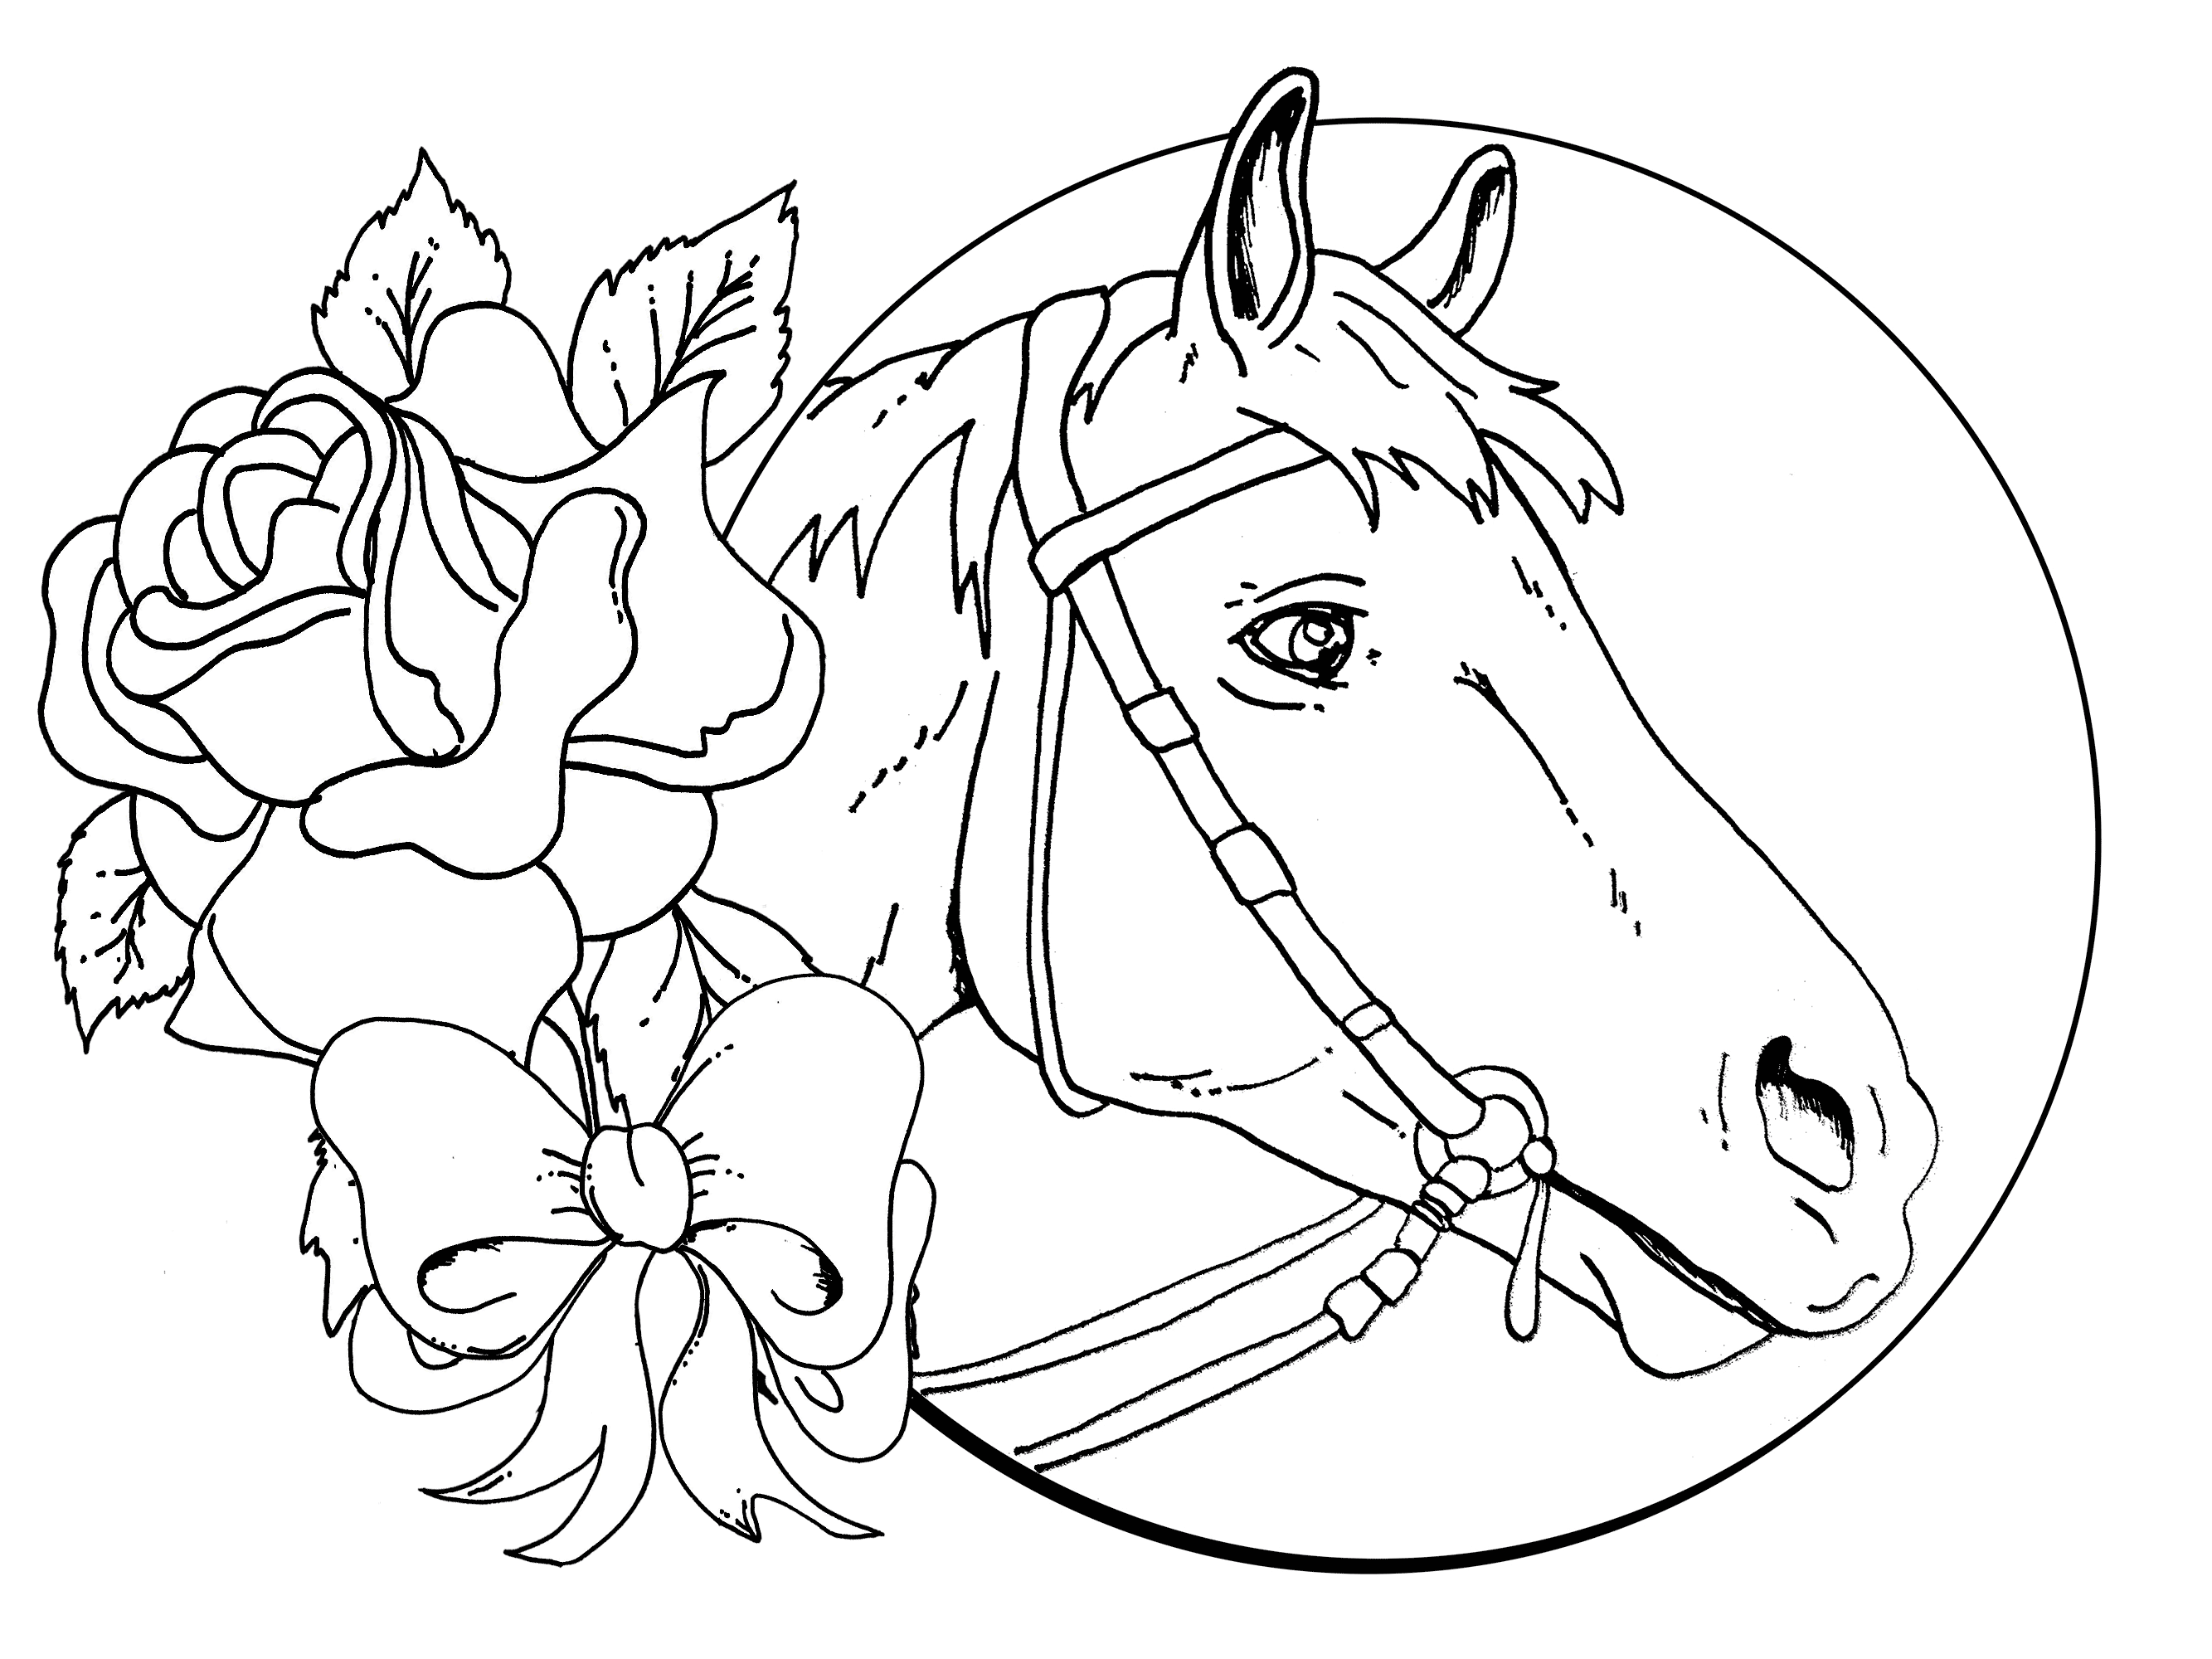 coloring sheets for girls to print cute girl coloring pages to download and print for free coloring for print to girls sheets